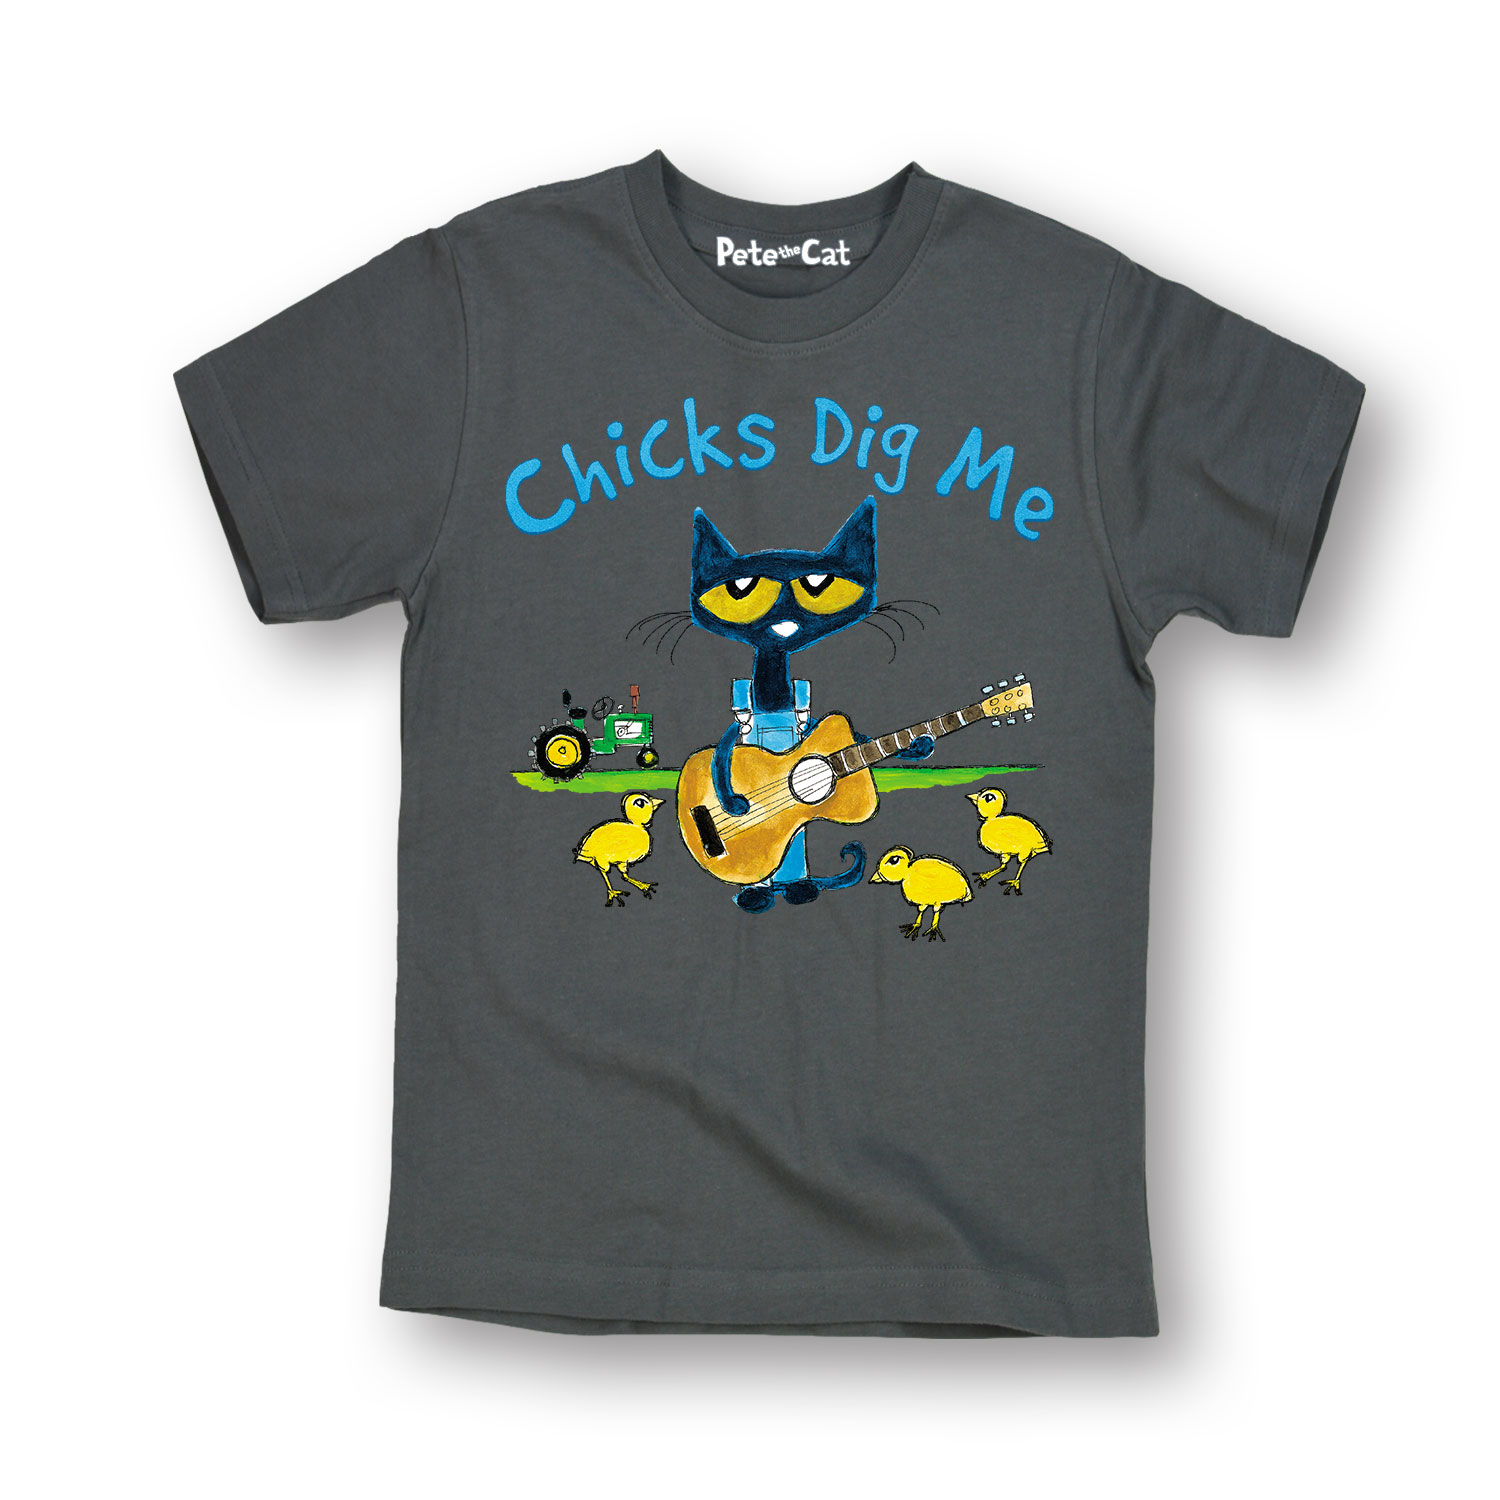 Pete The Cat Chicks Dig Me TODDLER SHORT SLEEVE TEE